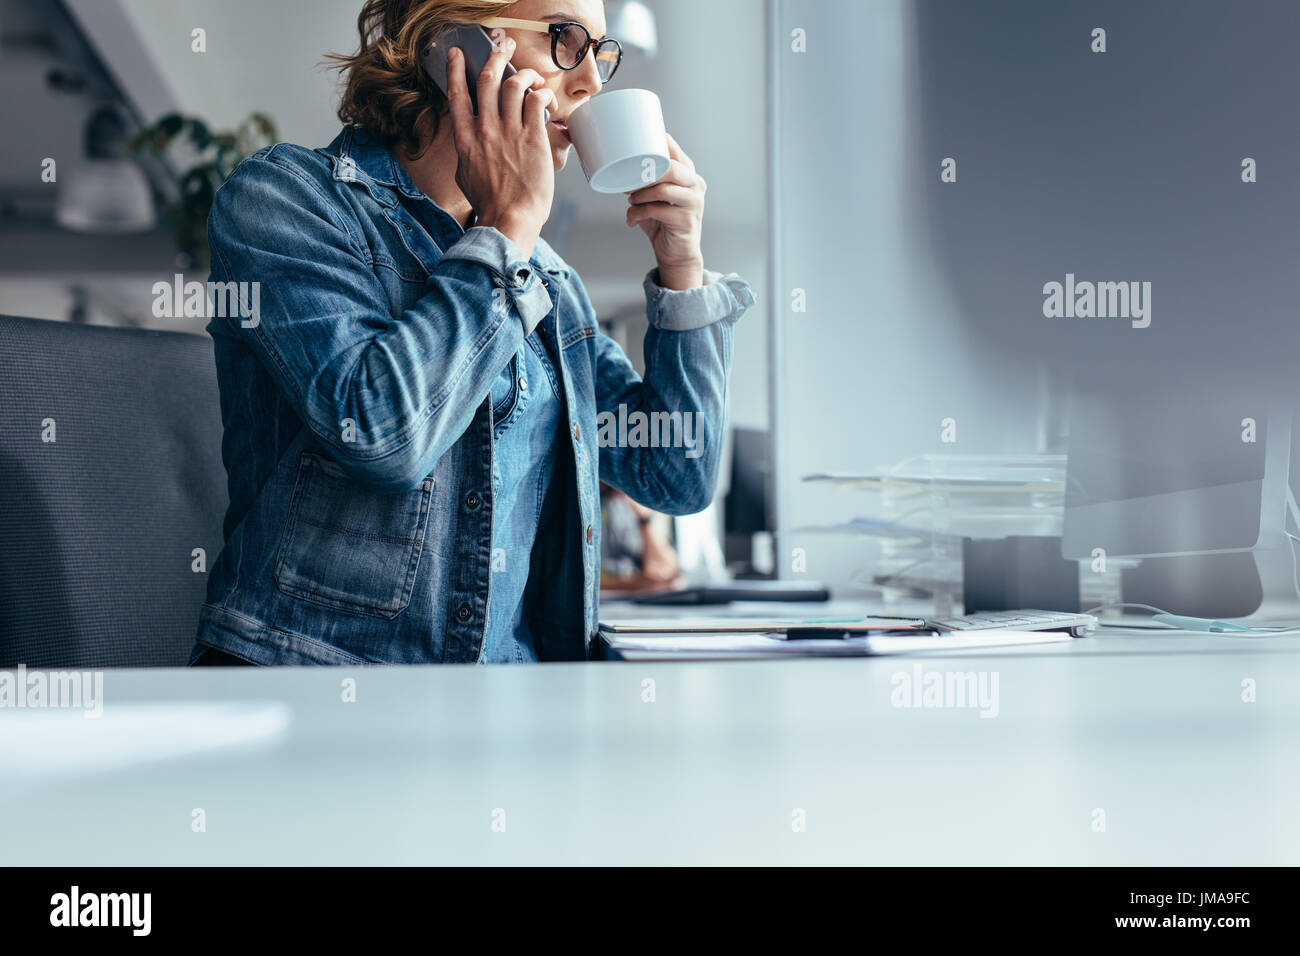 Female at work drinking coffee and talking on mobile phone. Young businesswoman at work making phone call and having - Stock Image